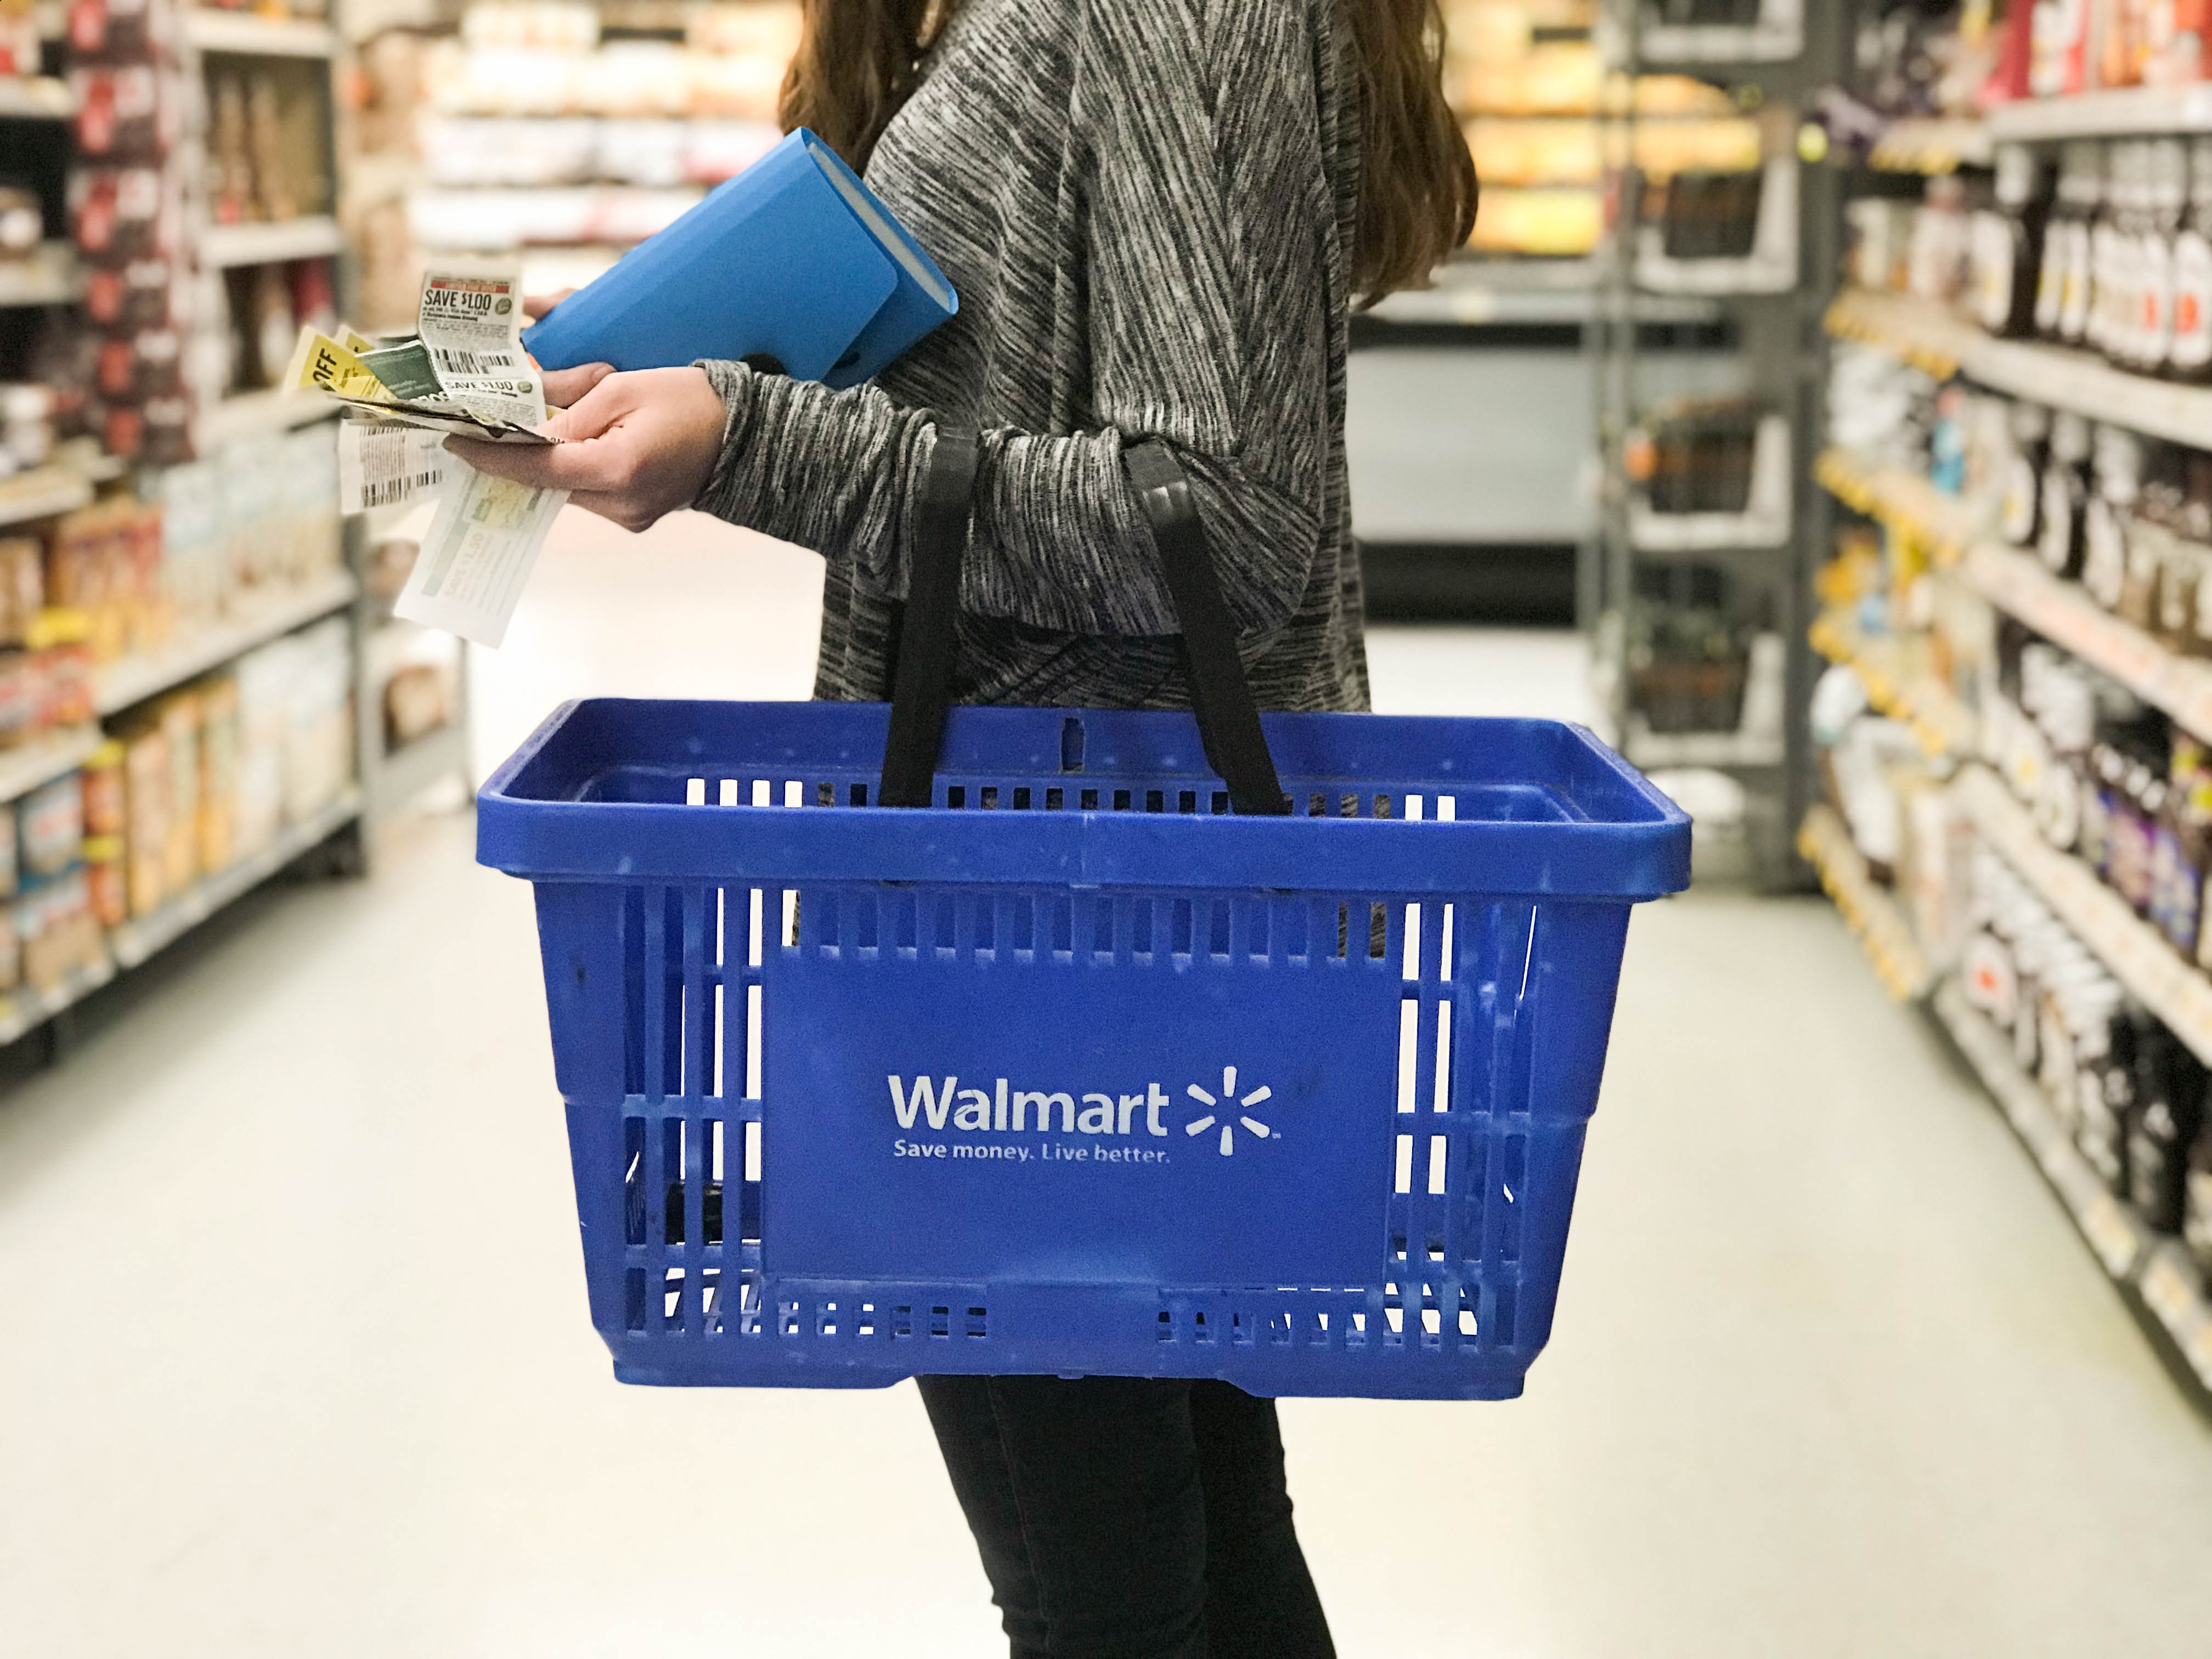 12 Walmart Couponing Hacks You Need To Know - The Krazy Coupon Lady - Free Printable Food Coupons For Walmart